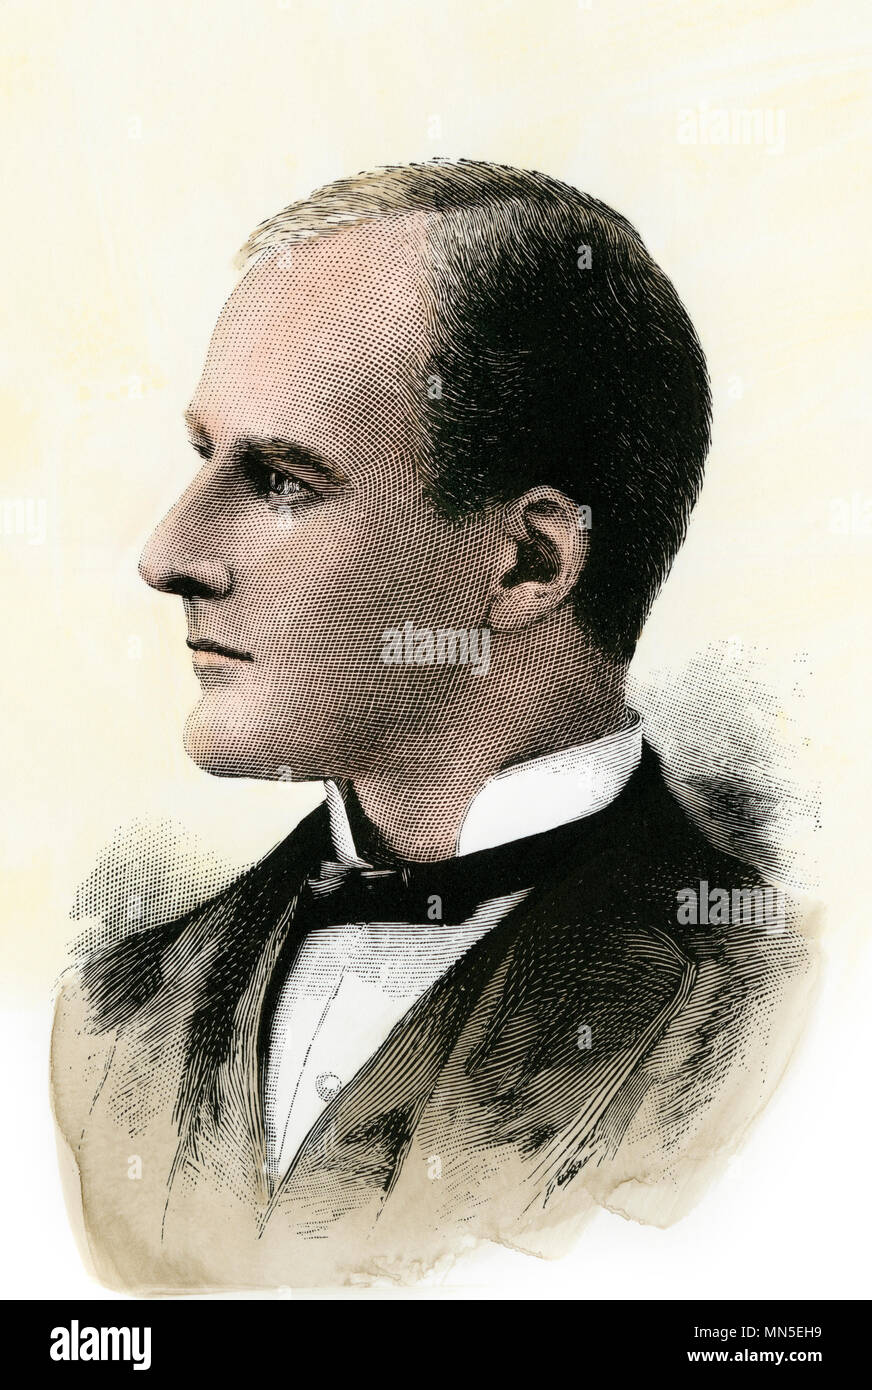 Eugene V. Debs, President of American Railway Union, 1880s. Hand-colored woodcut - Stock Image